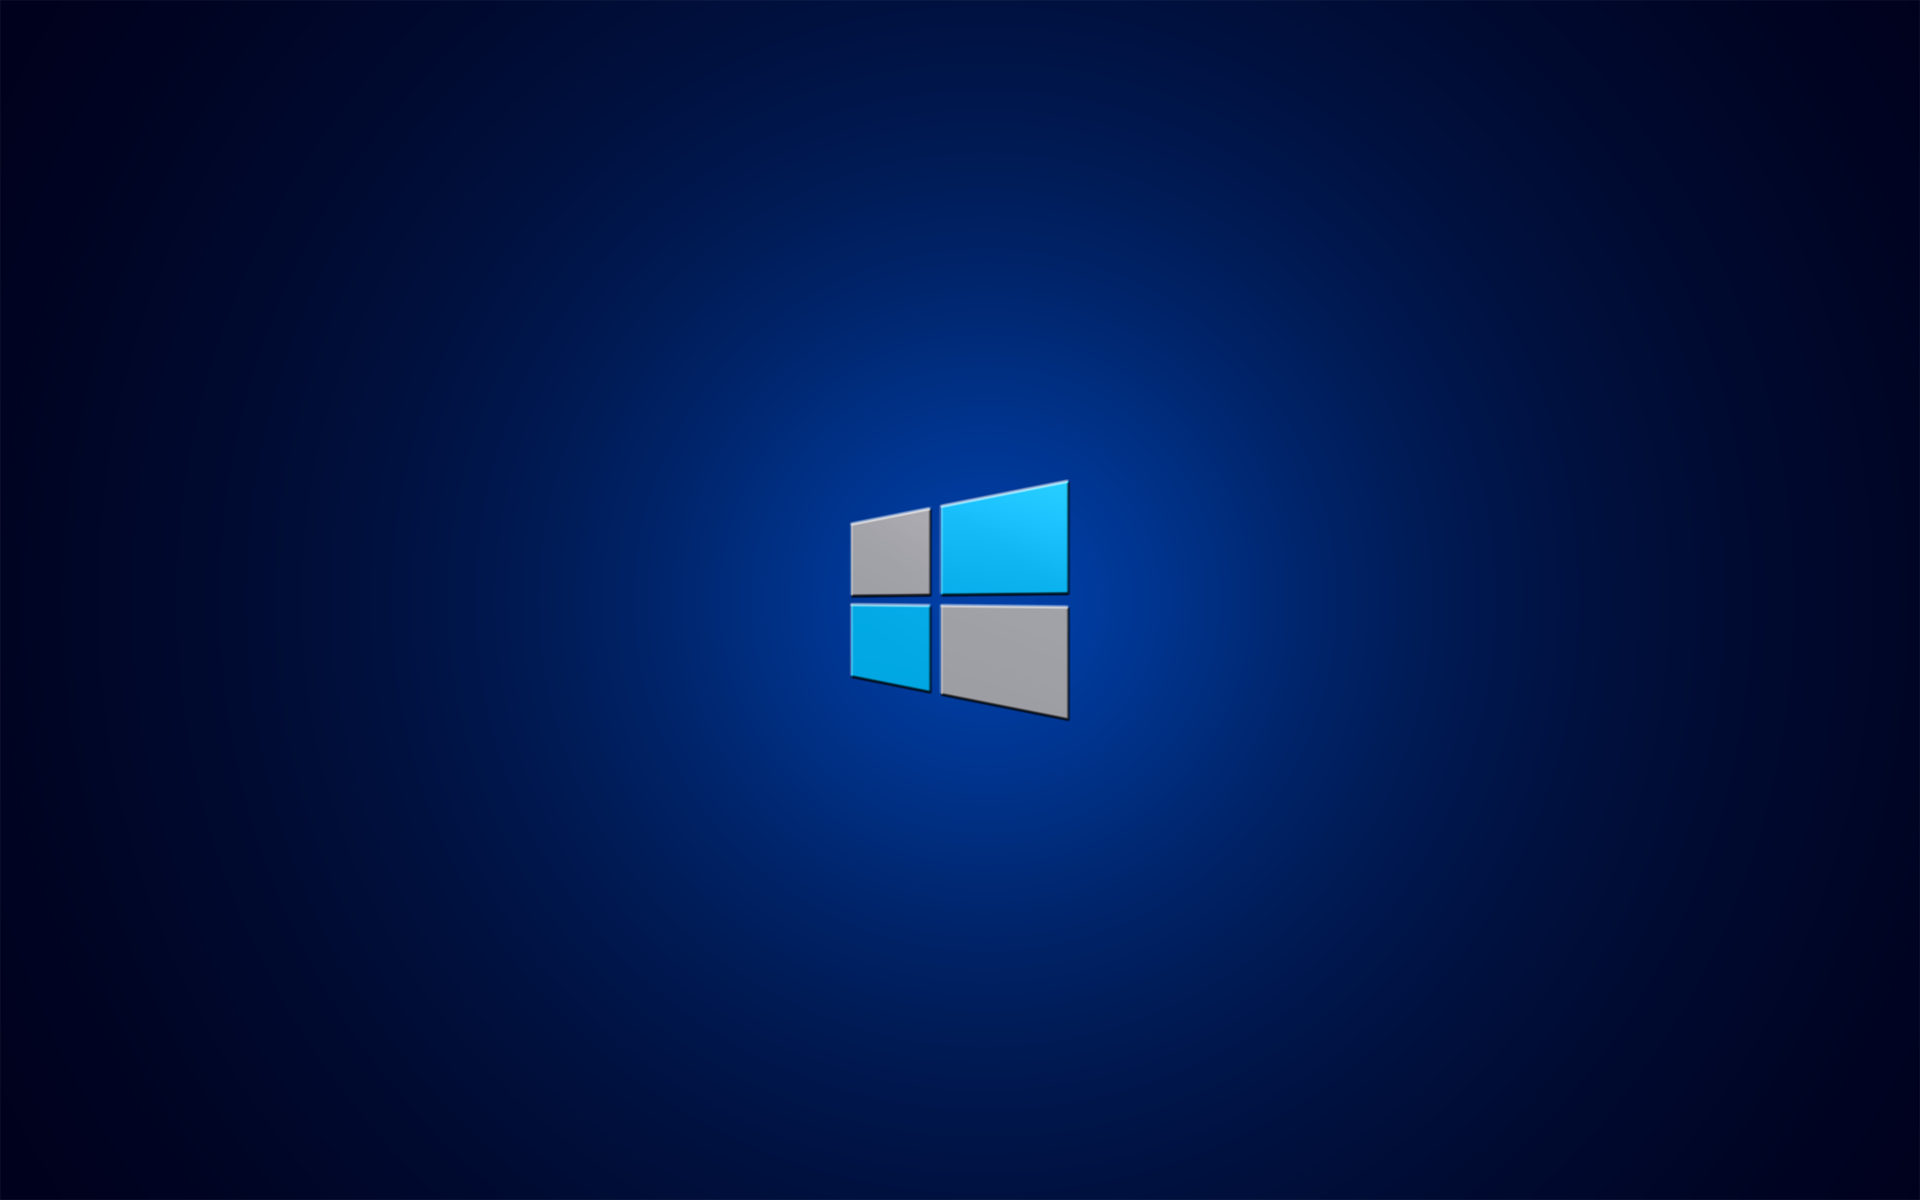 Download these 44 HD Windows 8 Wallpaper Images 1920x1200